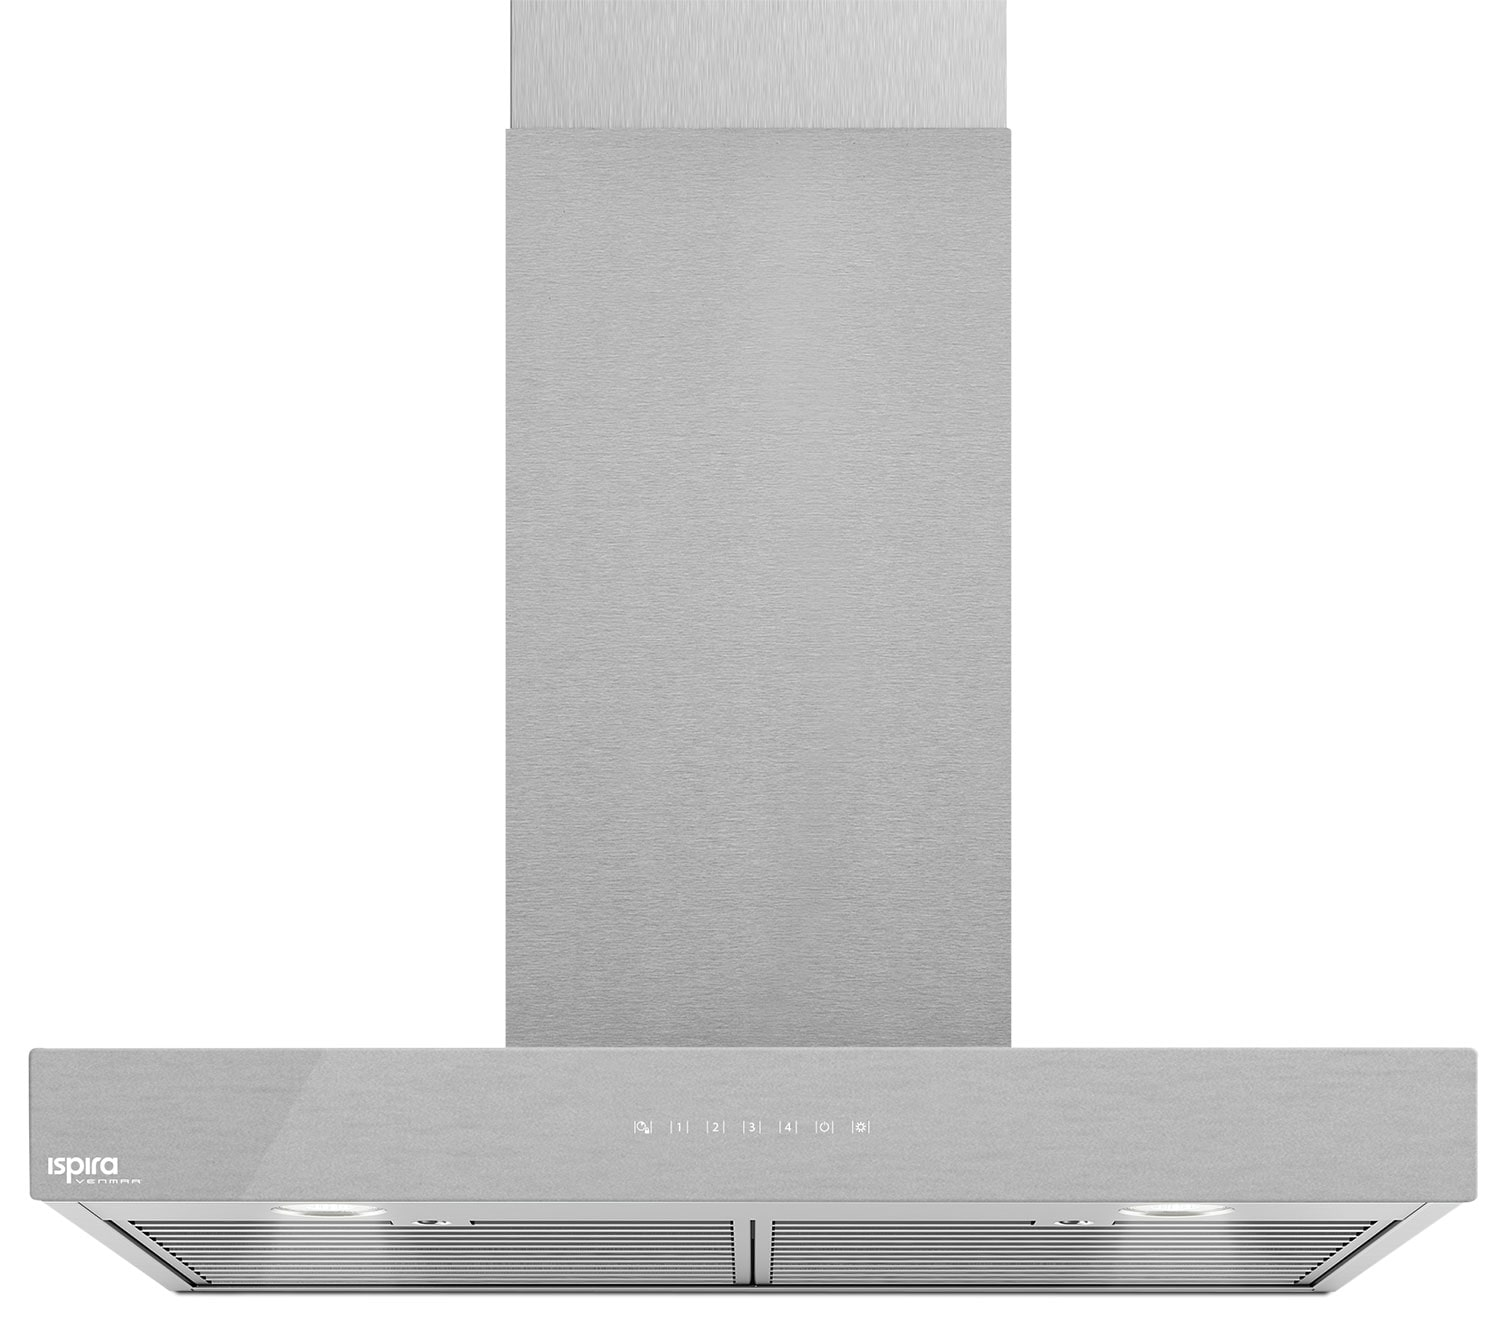 "Venmar Ispira 30"" Chimney Range Hood – Brushed Grey Panel IC700ES30SS"